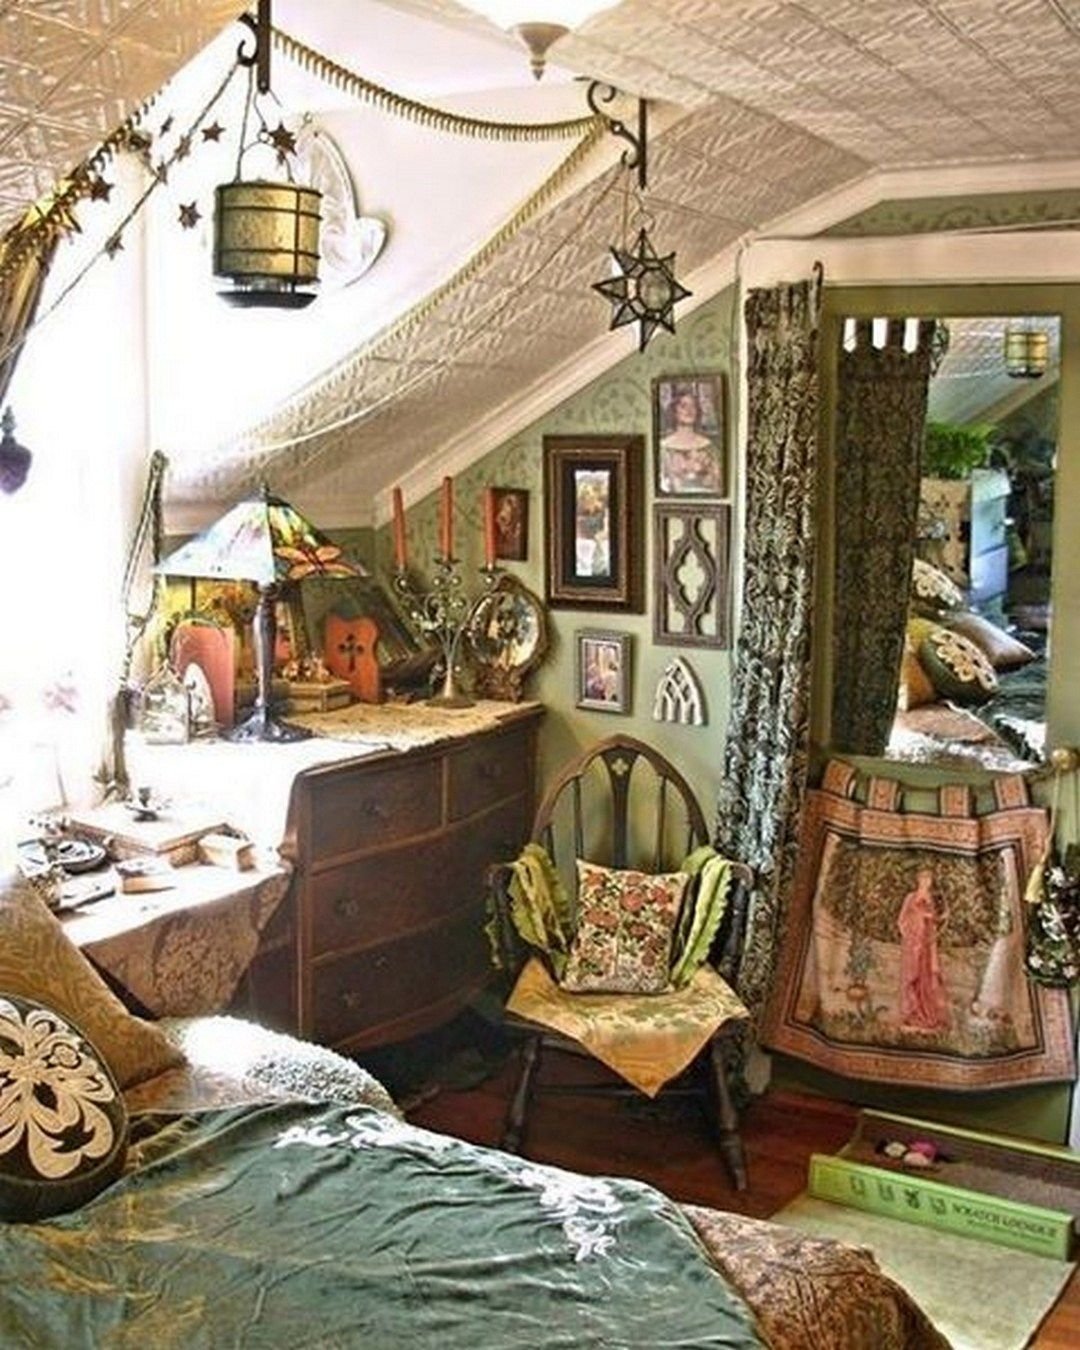 7 top bohemian style decor tips with adorable interior ideas house styles home bedroom decor on boho chic decor living room bohemian kitchen id=47887